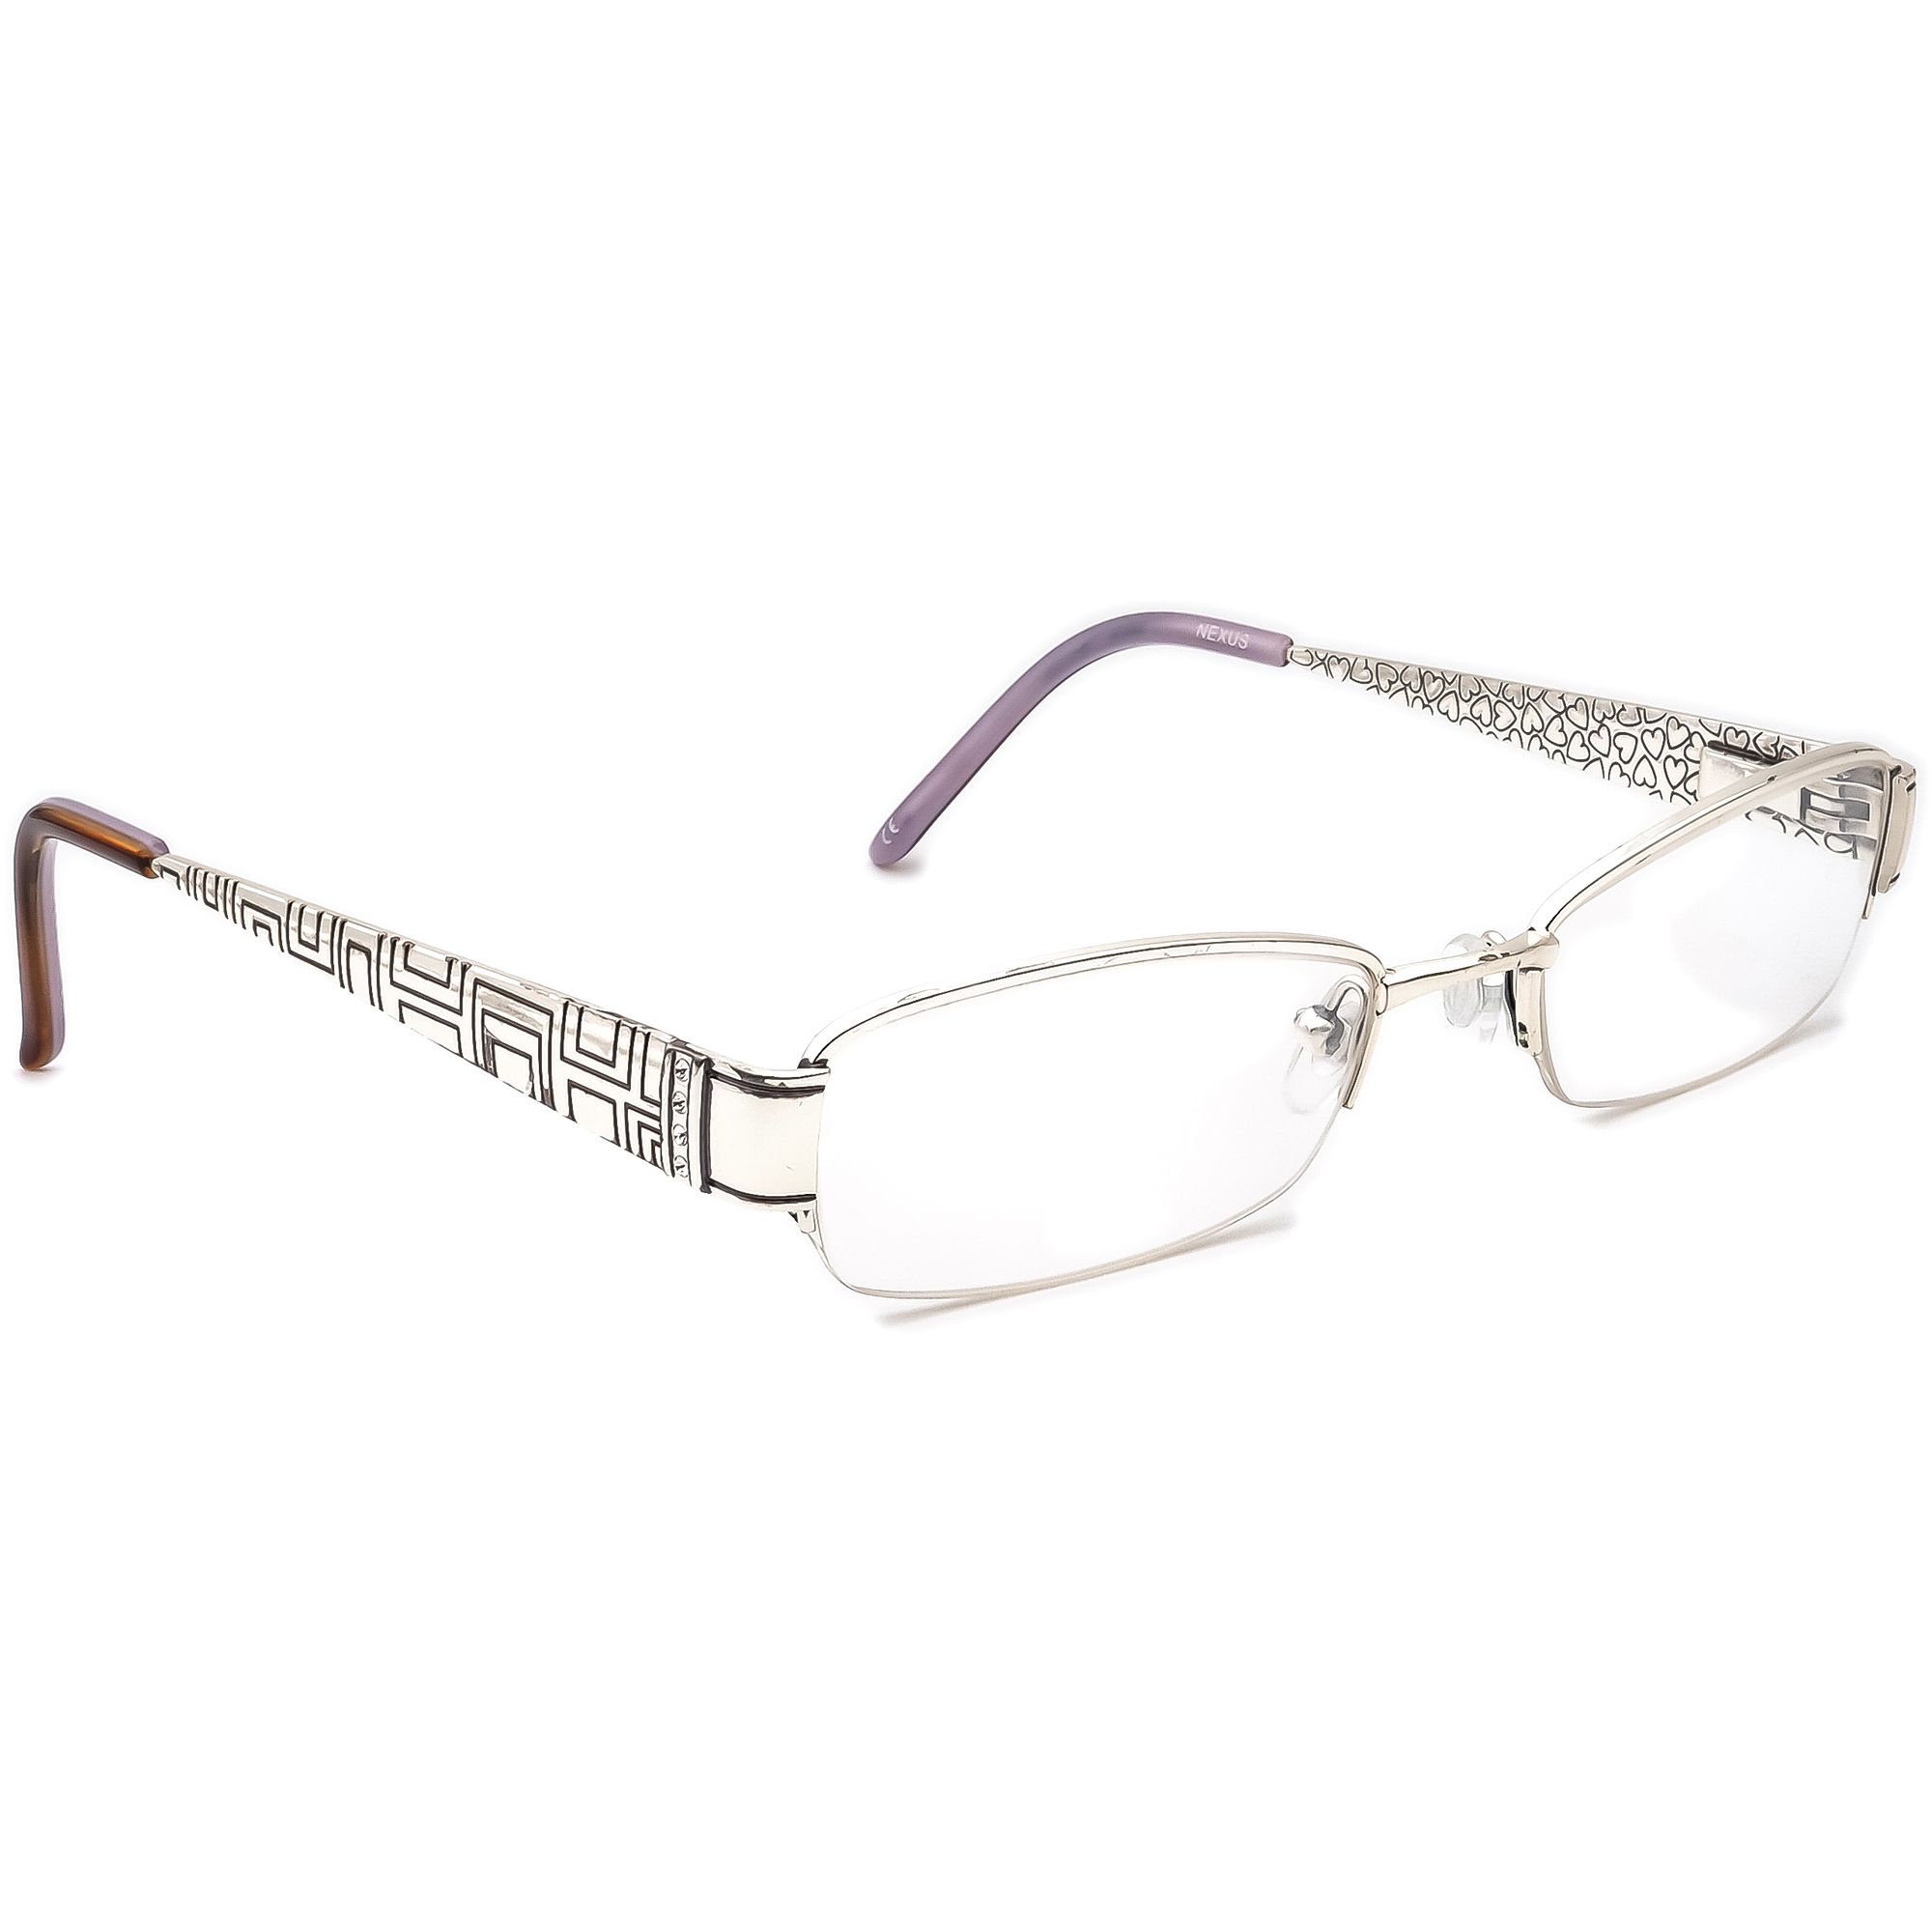 Brighton 402 A20197 Nexus Eyeglasses